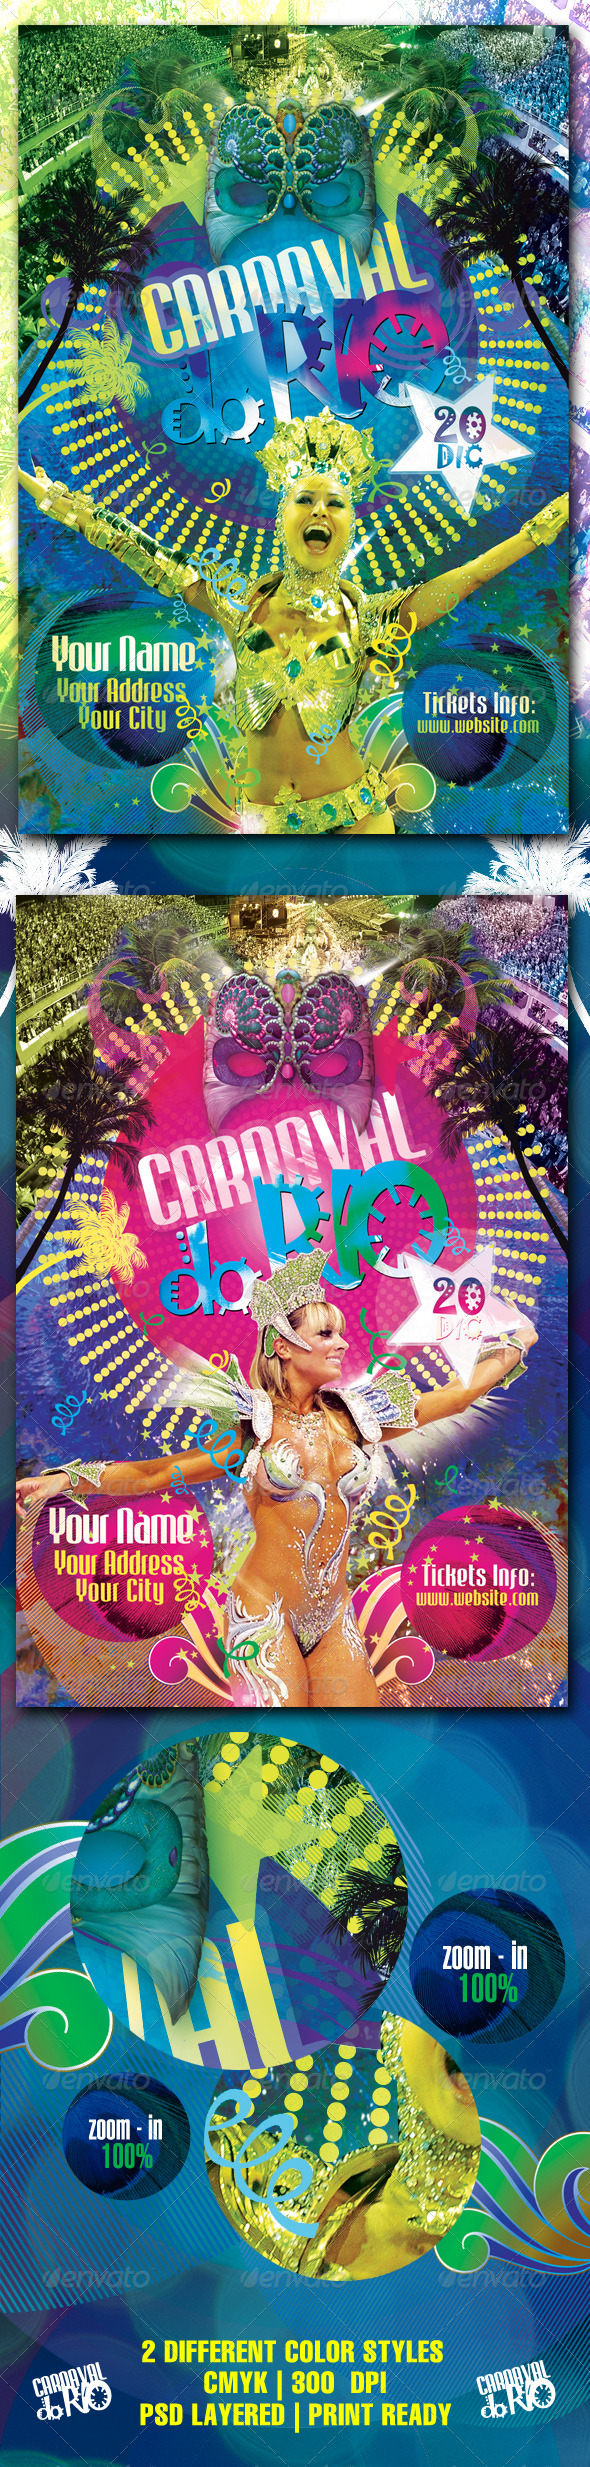 Carnaval Do Rio Flyer Template - Clubs & Parties Events